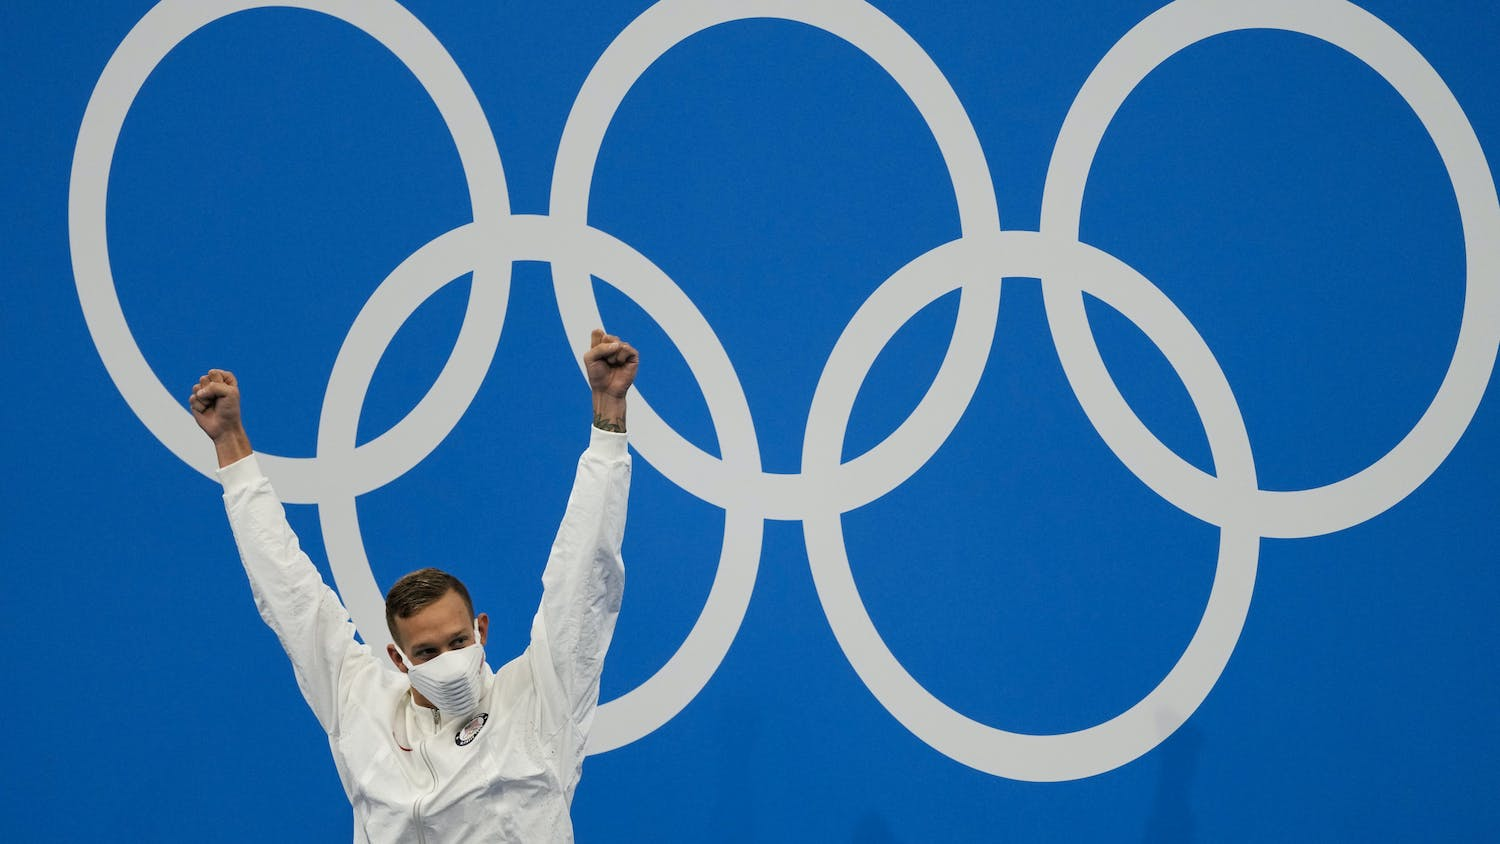 Caeleb Dressel, of the United States, celebrates his gold medal in the men's 4x100-meter medley relay final at the 2020 Summer Olympics, Sunday, Aug. 1, 2021, in Tokyo, Japan. (AP Photo/Jae C. Hong)